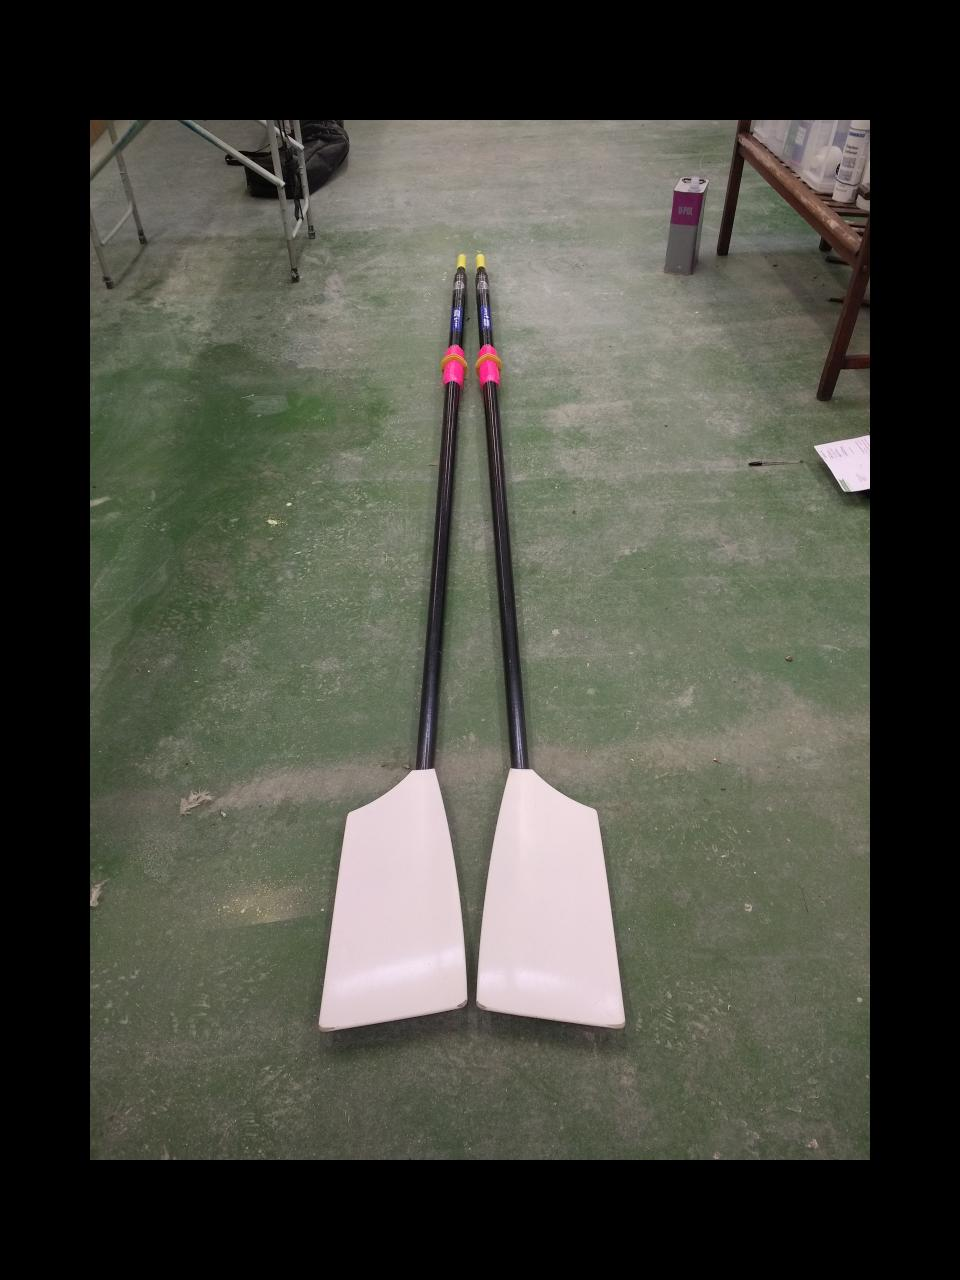 Croker S4 Soft full carbon sculling blades for sale